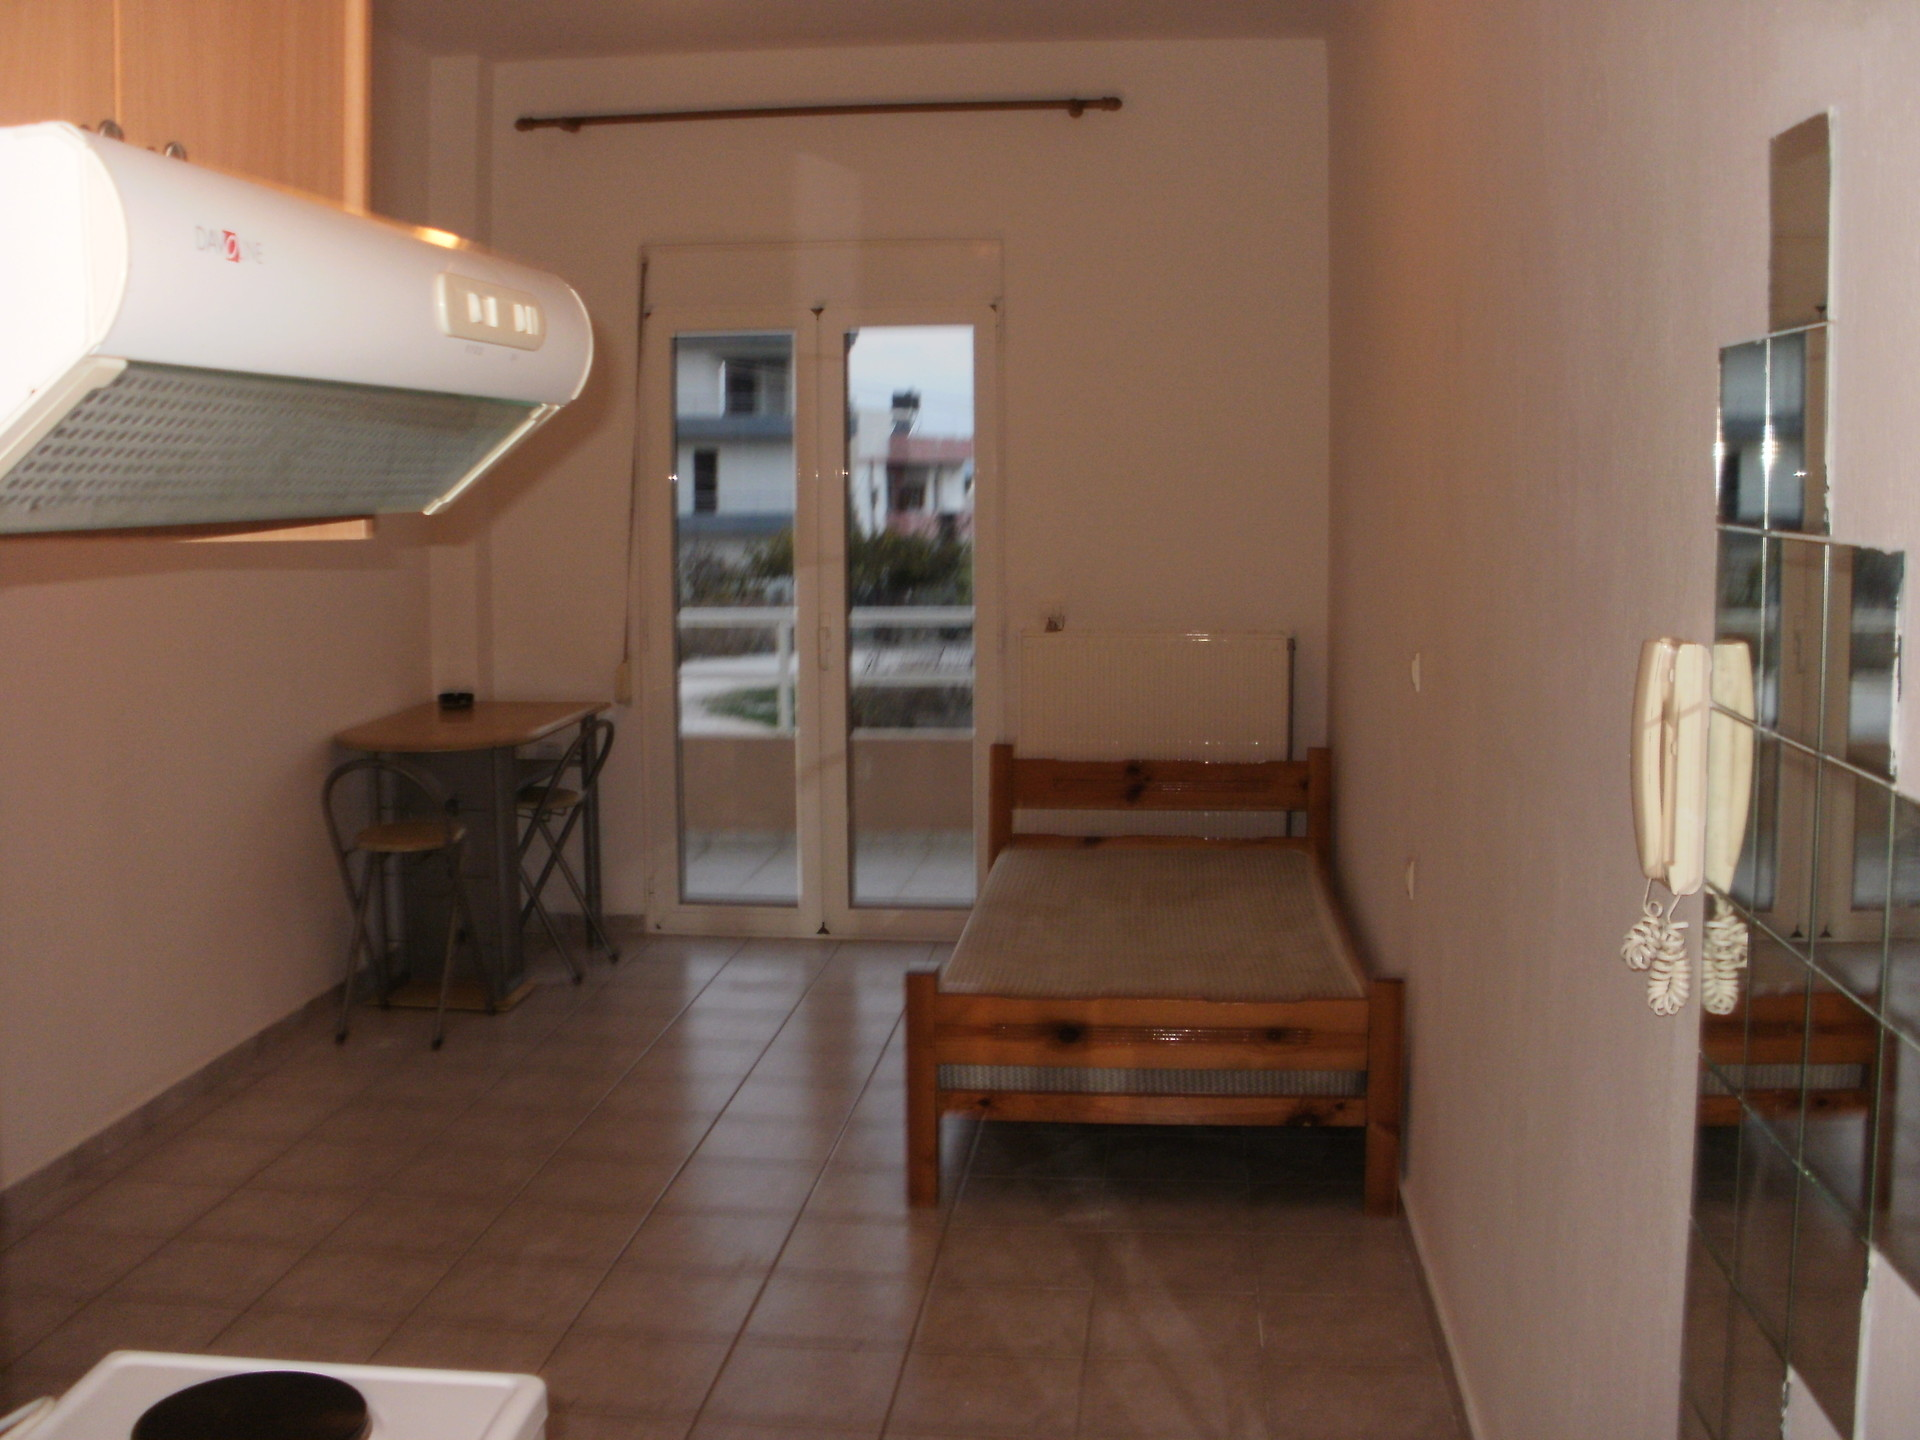 Furnished one-room apartment near the University of crete | Rent ...